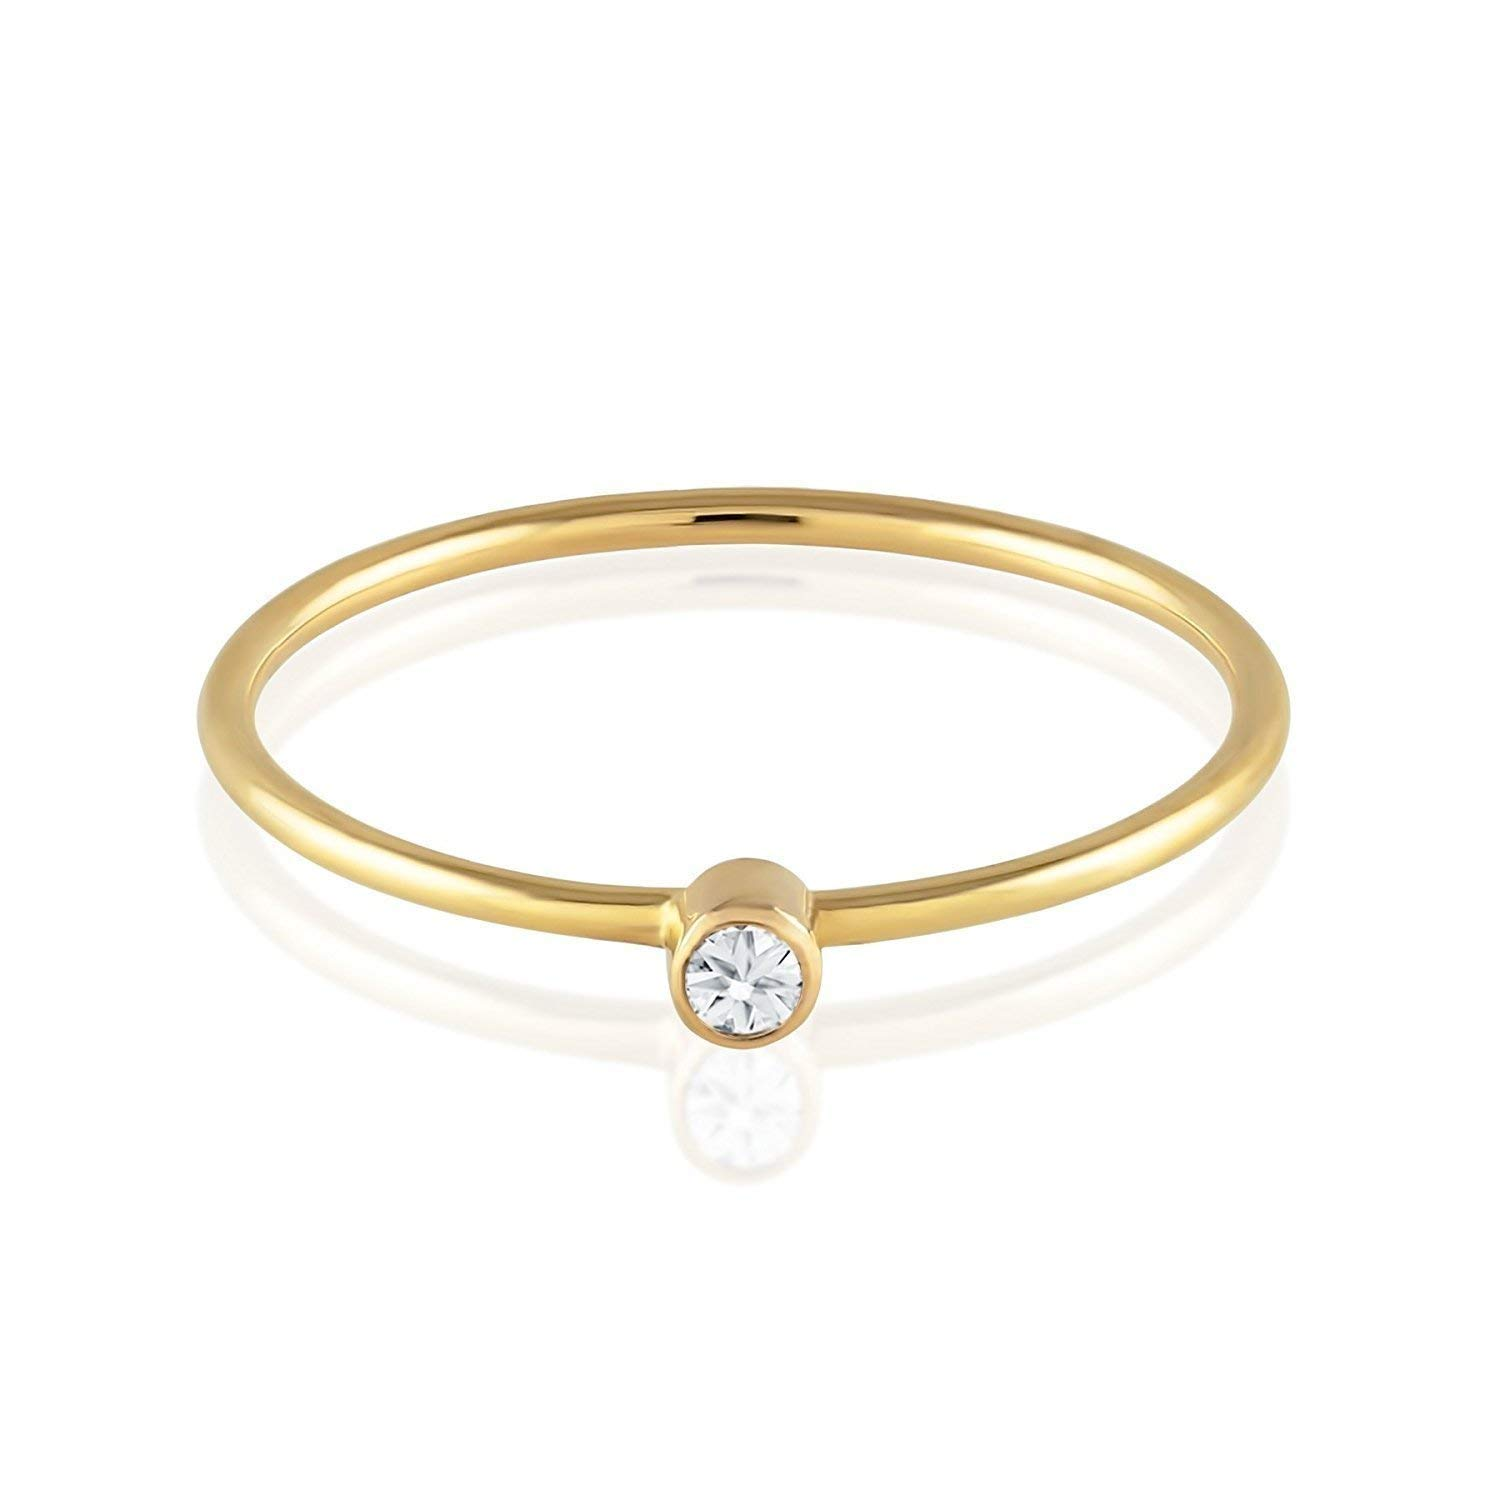 c56f891258 Get Quotations · TousiAttar Diamond Ring - Solitaire Stackable Thin Rings  for Women and Girls - Round Cut Genuine